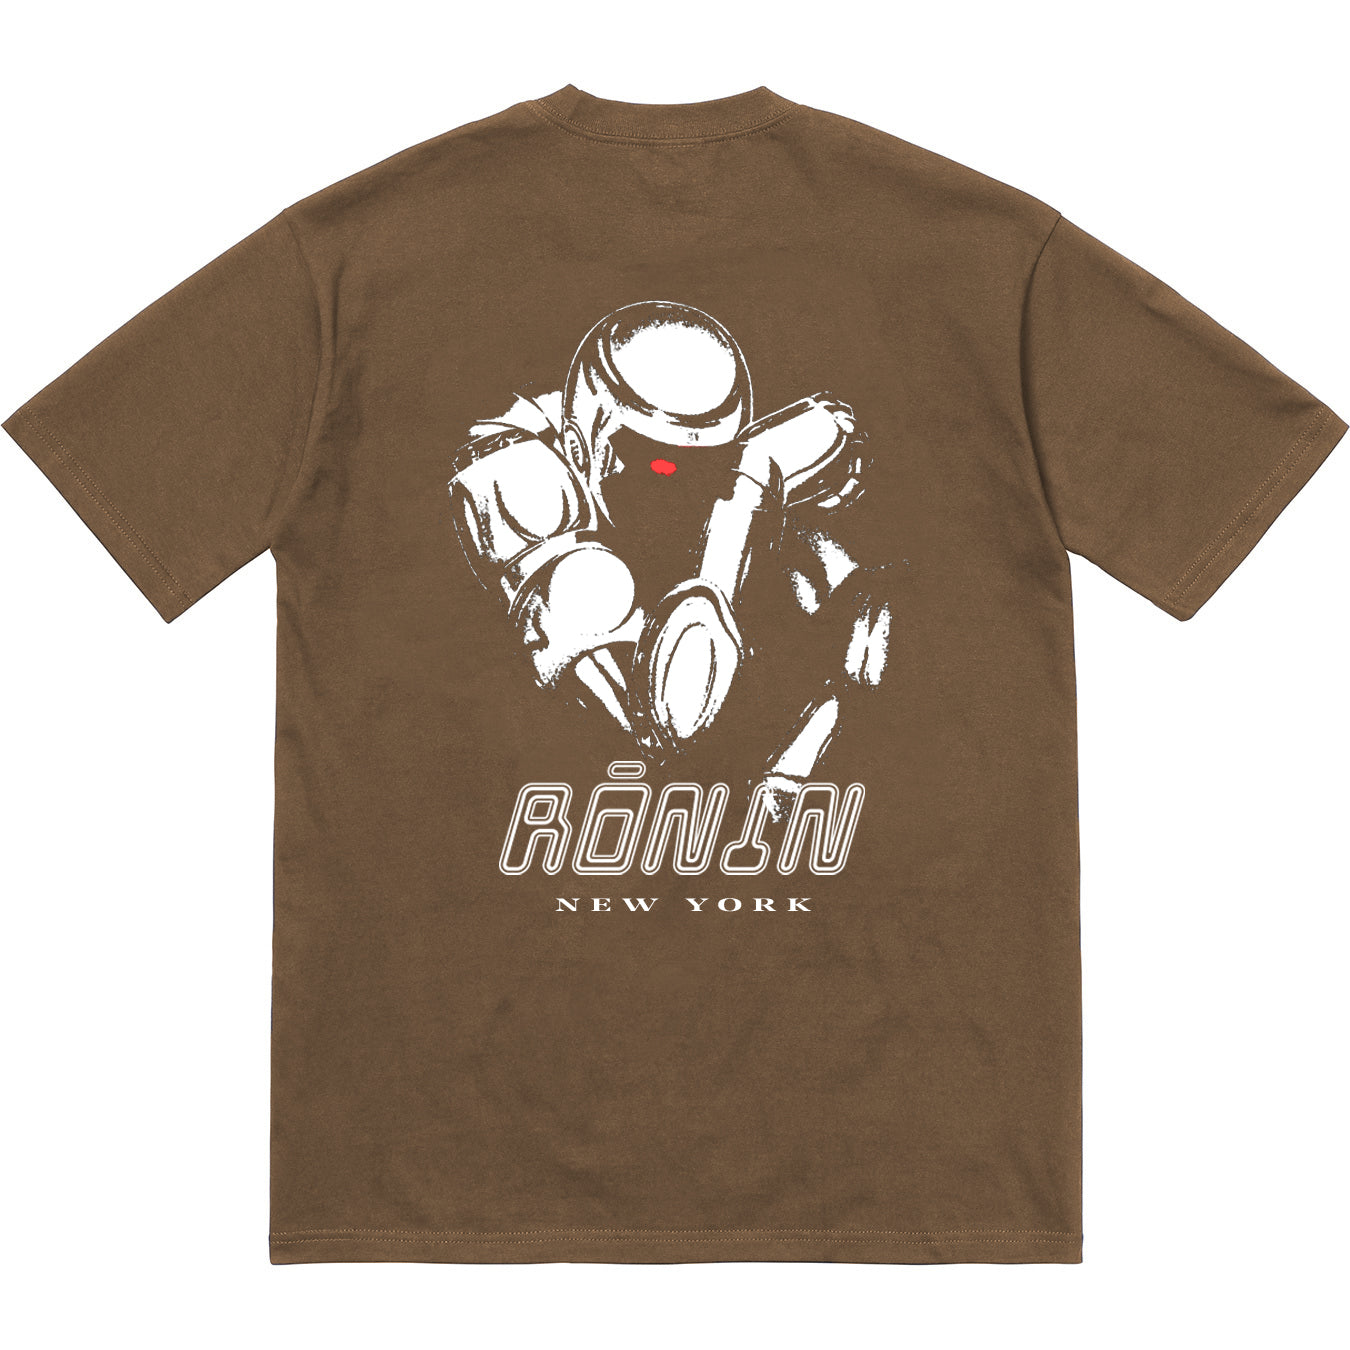 Aegis Tee - Pale Brown